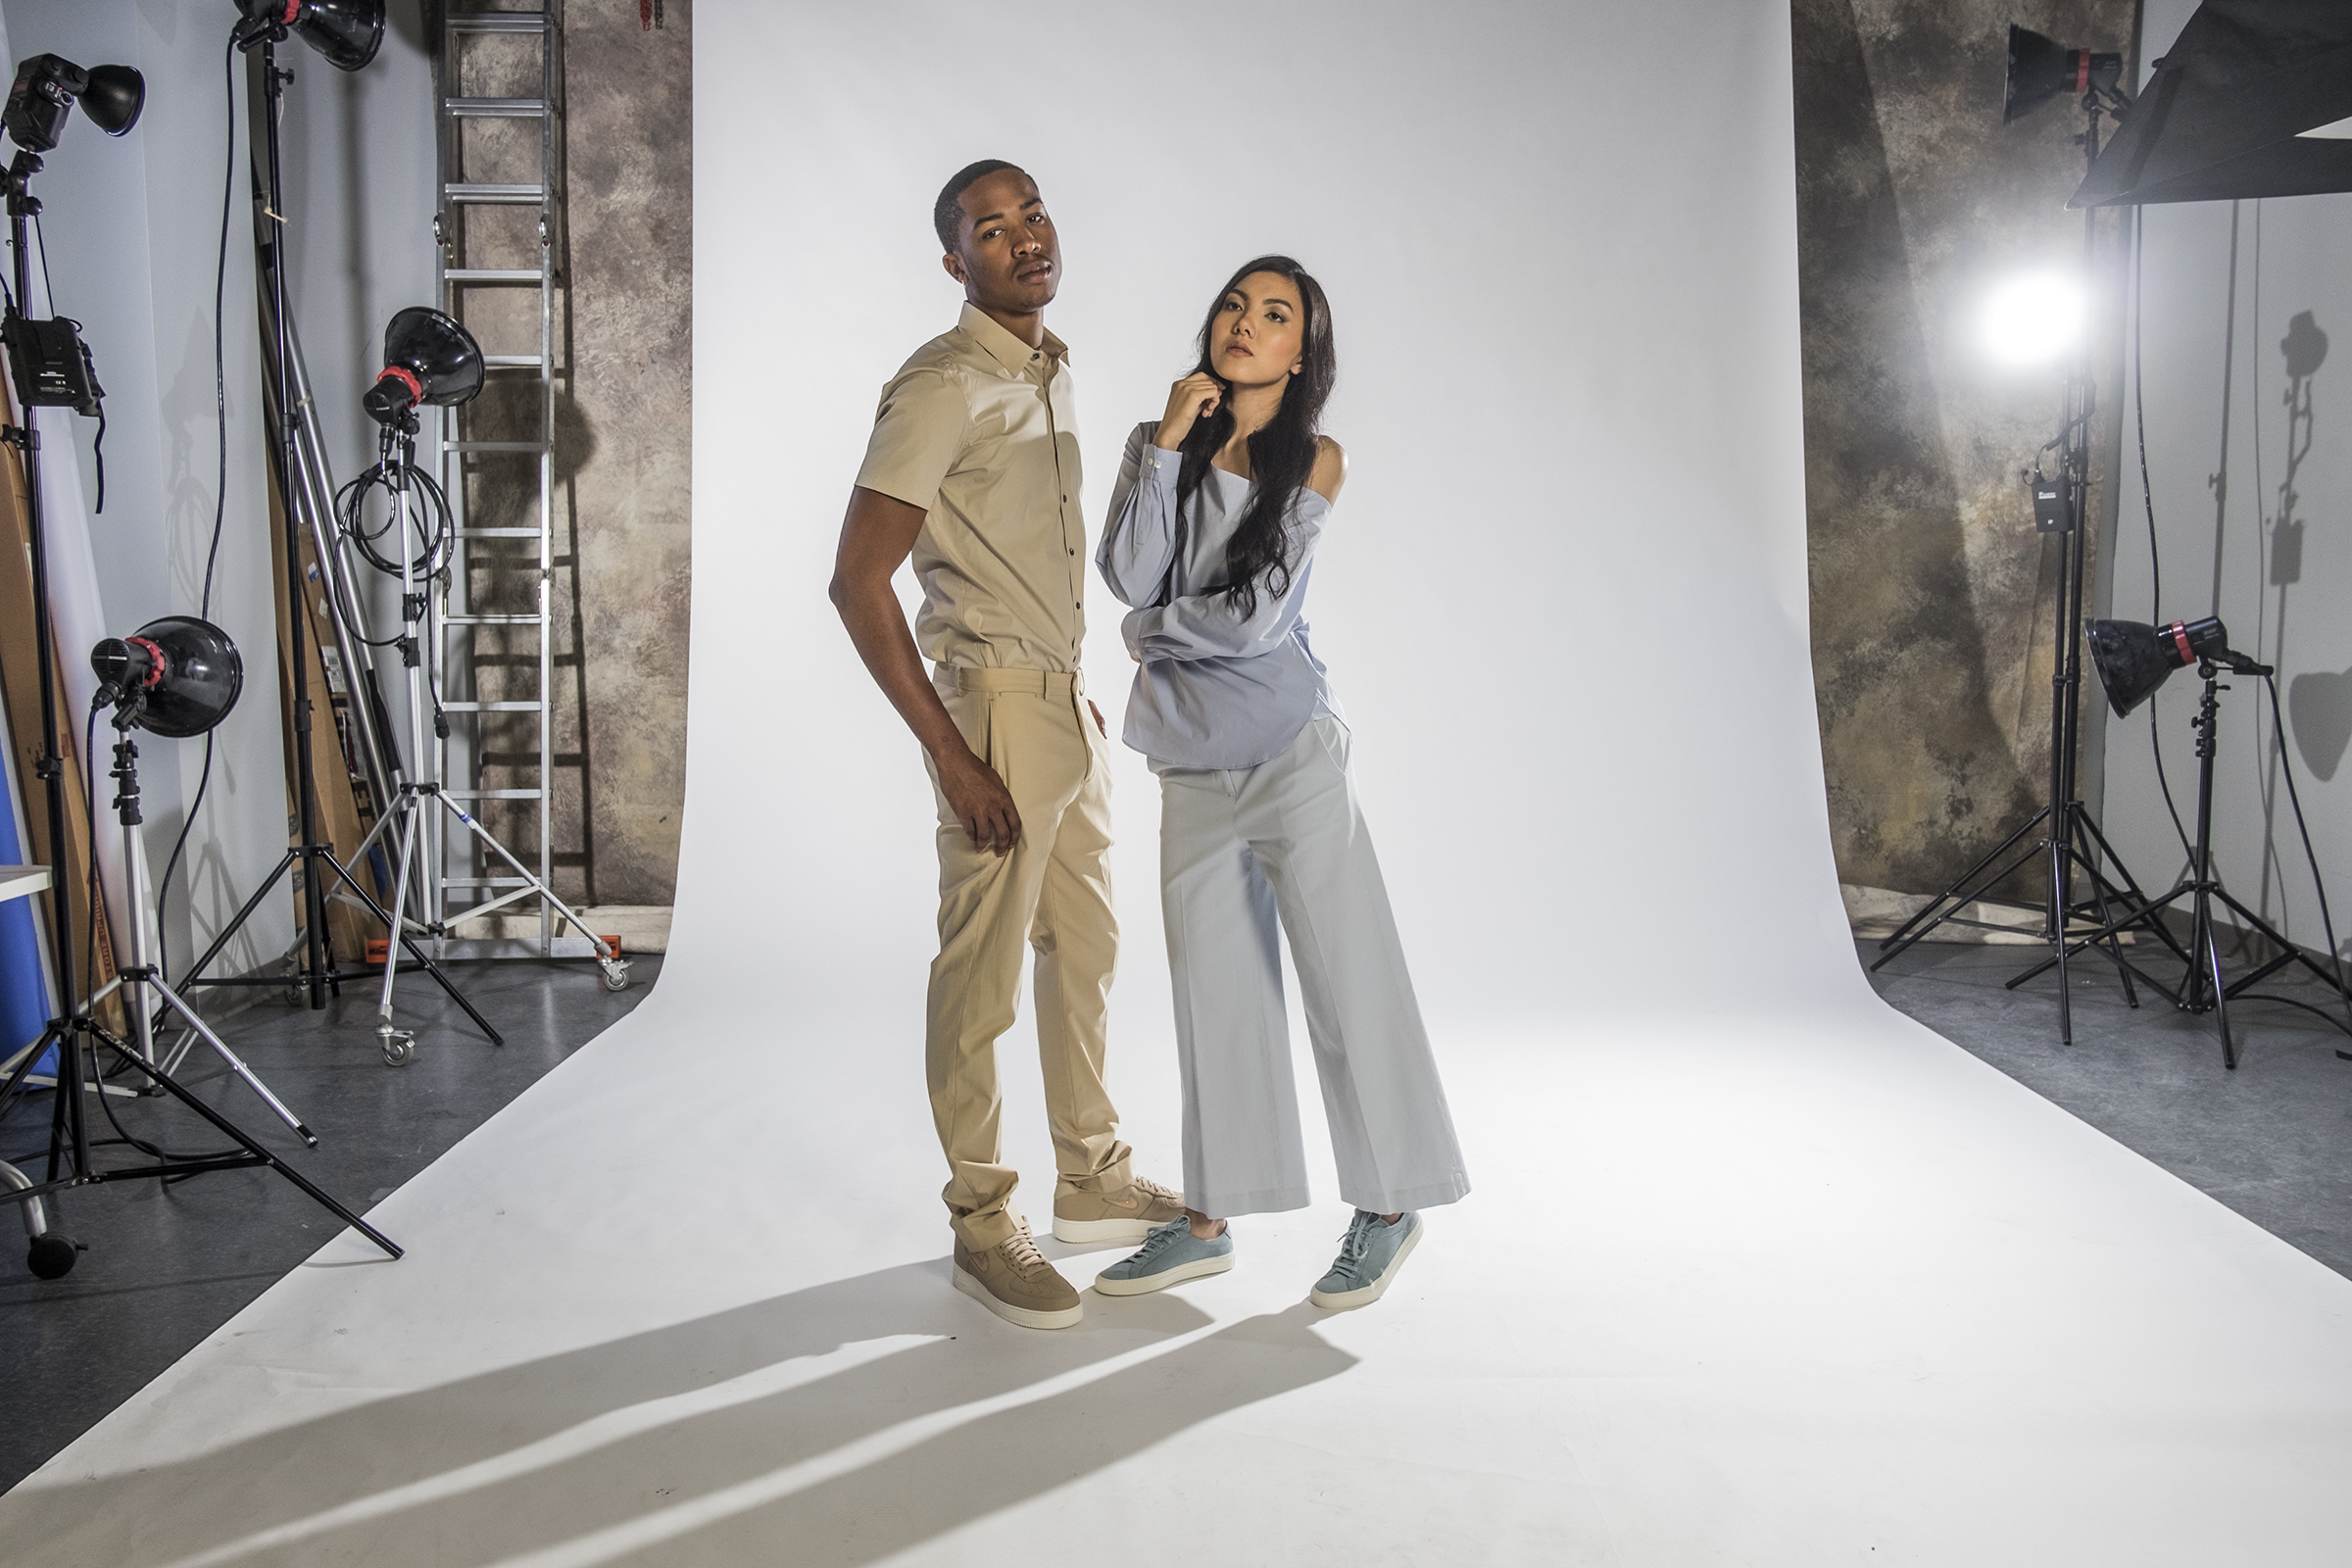 Here  Donovan wears a short-sleeved button-down shirt in khaki, Sylvain, $175; flat-front pant in Khami, Jake W, $245, both at Theory.The sneakers: Khaki Nike Air Force One, $150, at Ubiq. Mely Duong. pulls off this blue off-the-shoulder blouse, Ulrika, $235; Capri pant in sky blue, Nadeema, $235, at Theory.The sneakers: Sky blue sneakers, Woman by Common Projects, $449, at Theory. ED HILLE / Staff Photographer